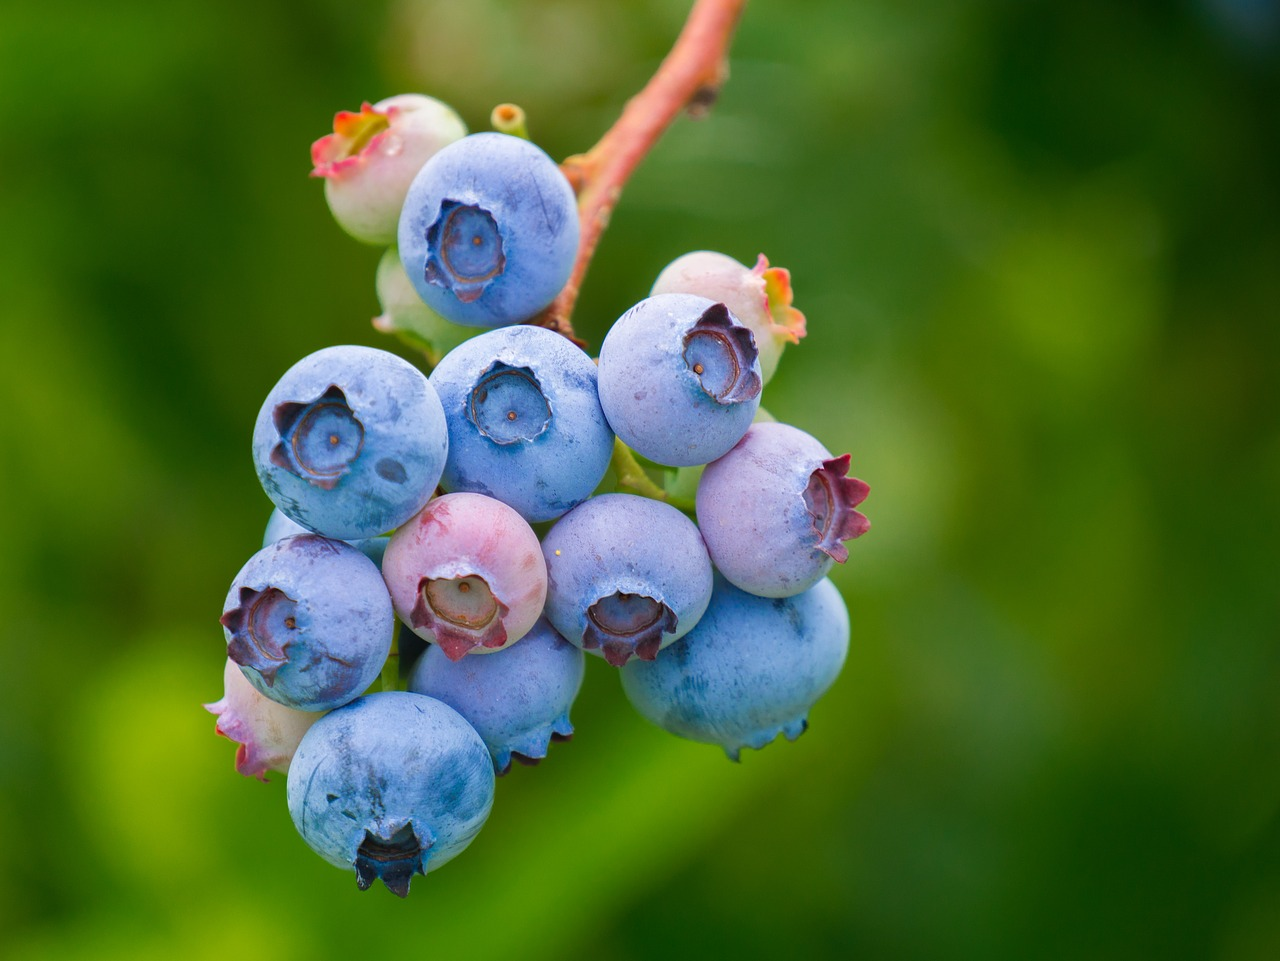 Blueberries appear to help improve memory and cognitive function in older adults. (Image: pixabay / CC0 1.0)